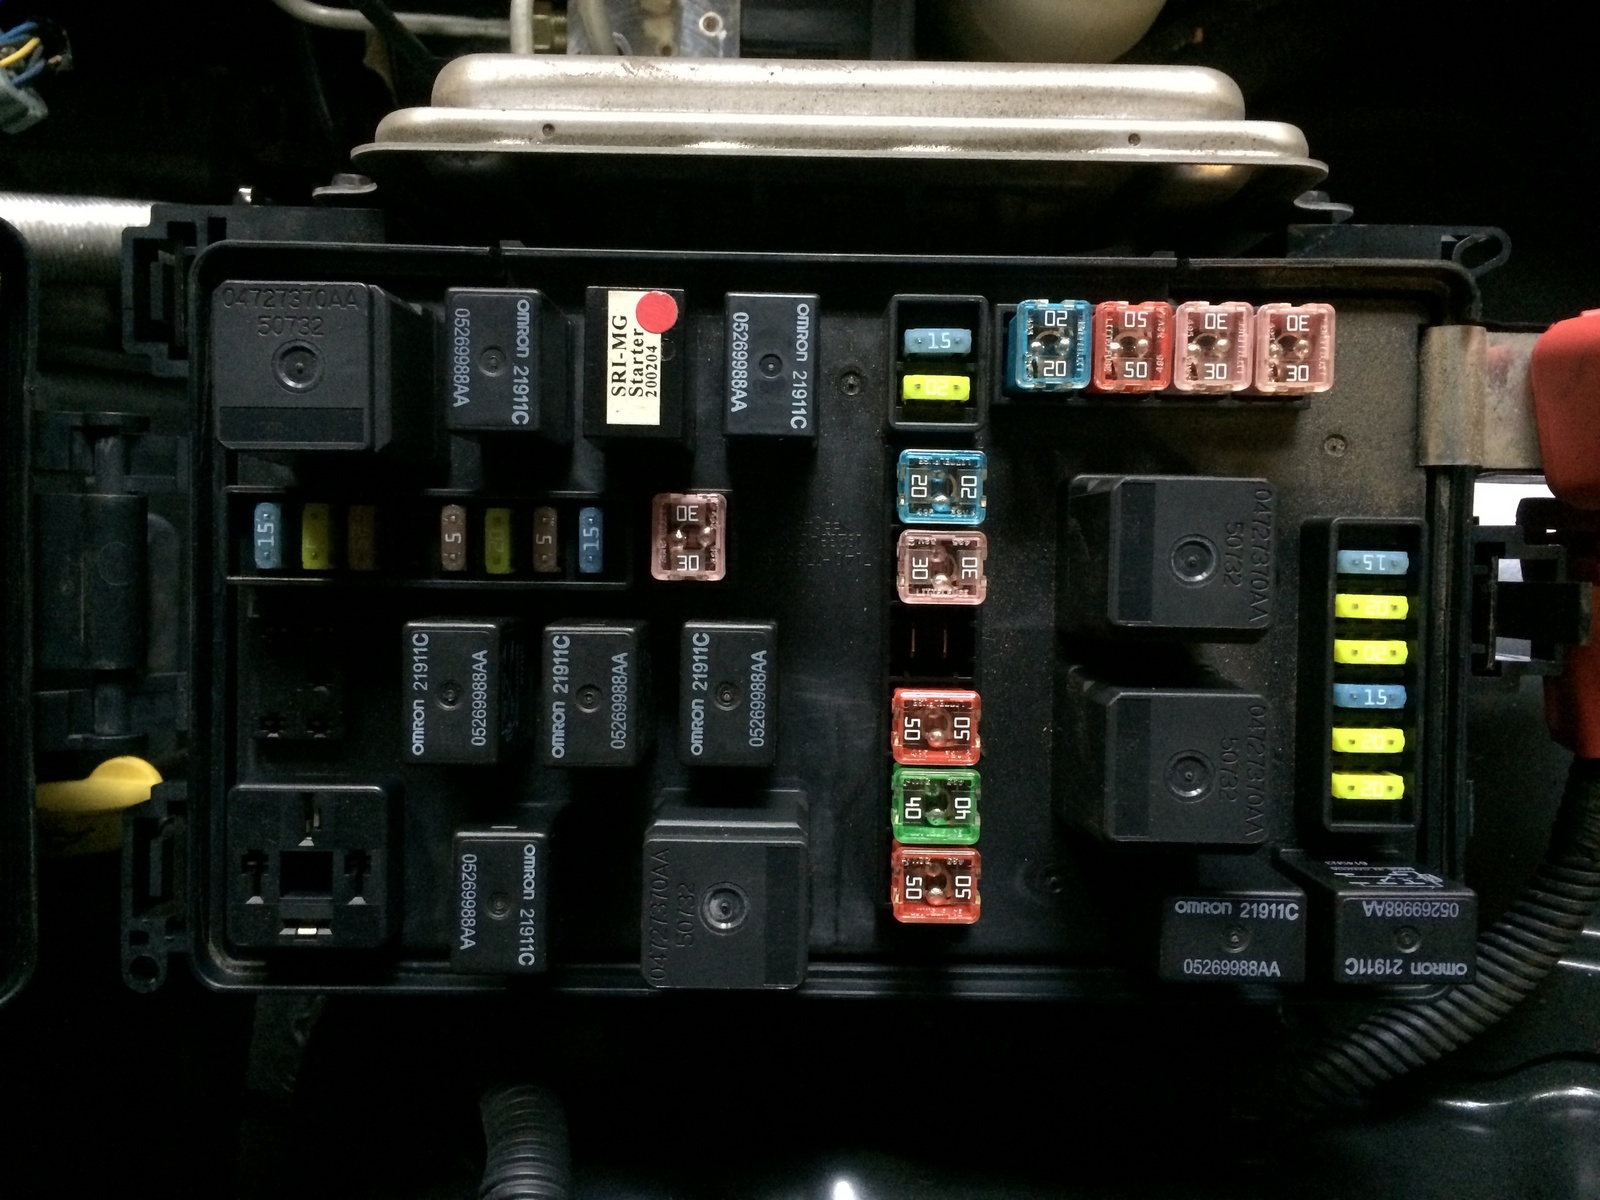 2012 Dodge Charger Fuse Box Location : Chrysler fuel pump relay free engine image for